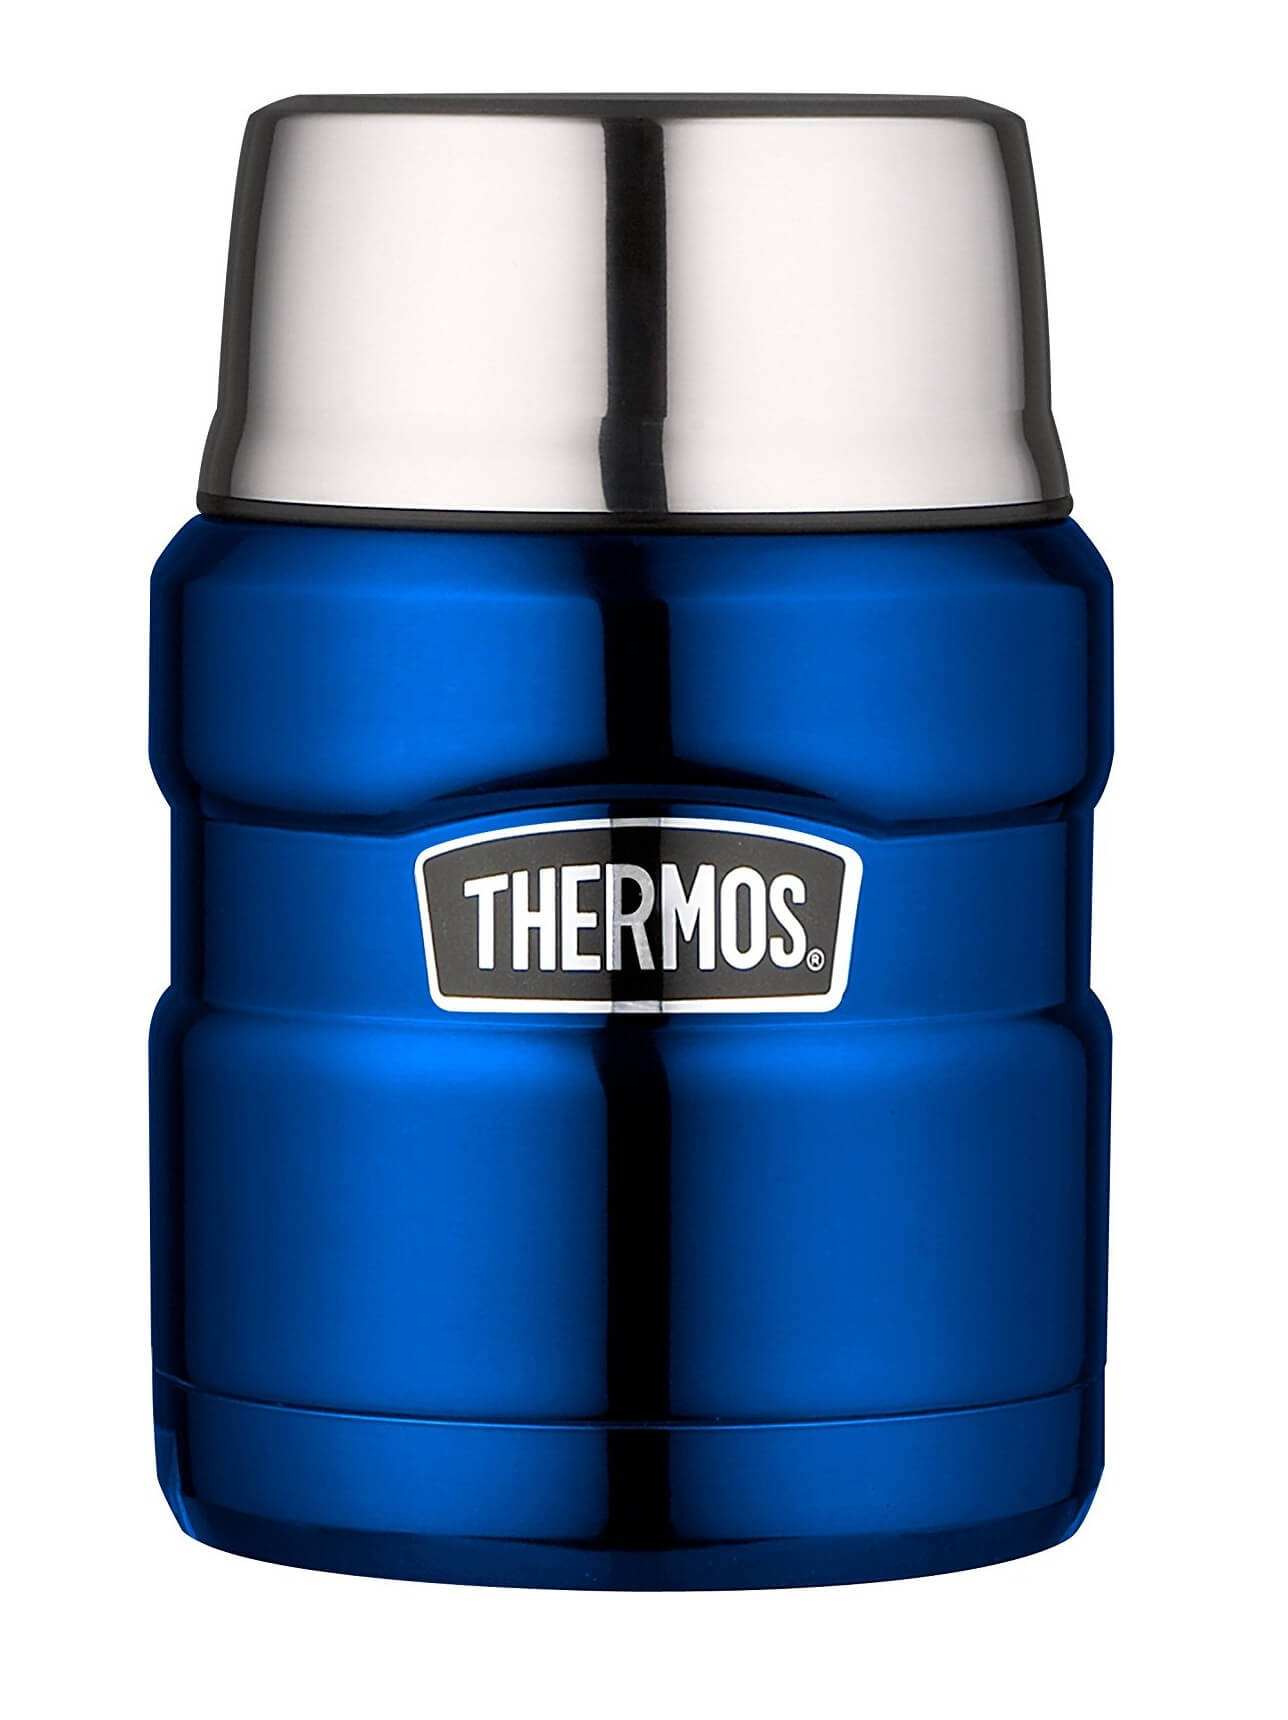 Best Thermos for Drinks